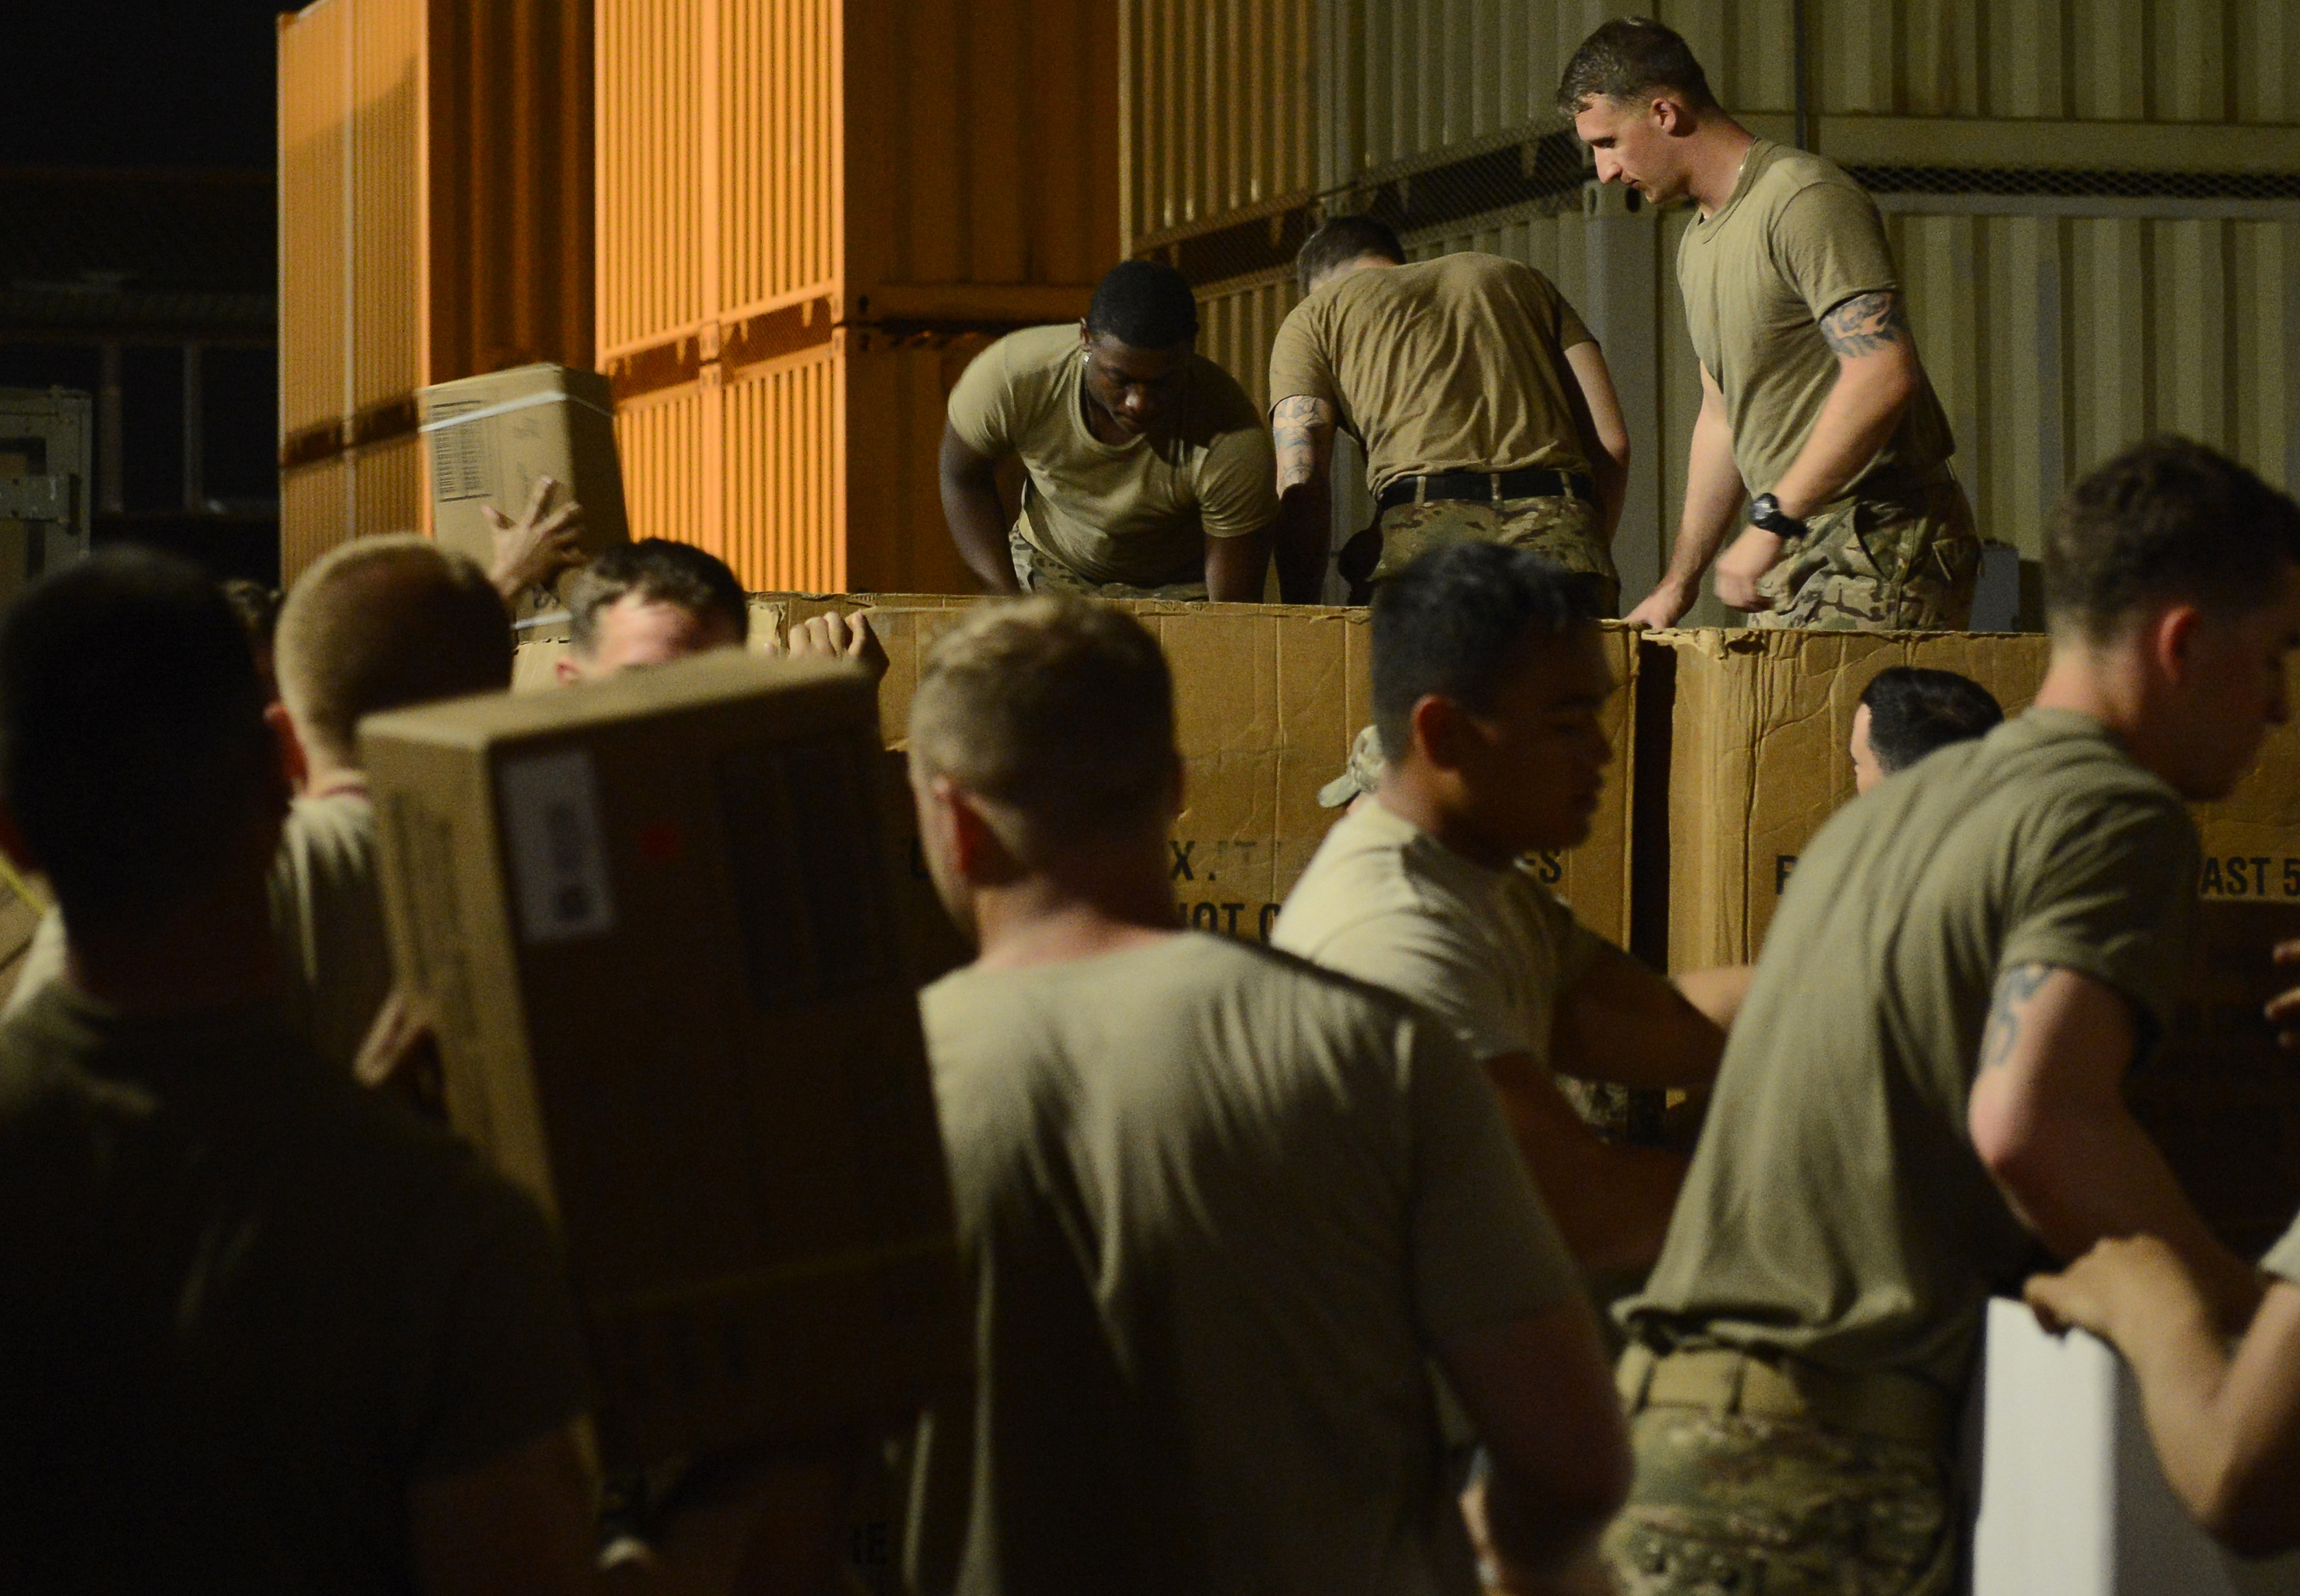 Soldiers from Bravo Company, 3rd Battalion, 15th Infantry Regiment, load pallets with water and meals ready-to-eat Feb. 13, 2016, at Camp Lemonnier, Djibouti. Members of Bravo Company participated in a two-part validation exercise that consisted of a rapid mobilization scenario from the camp, which lead to the company convoying to and providing security for the U.S. Embassy in Djibouti. (U.S. Air Force photo by Senior Airman Peter Thompson)